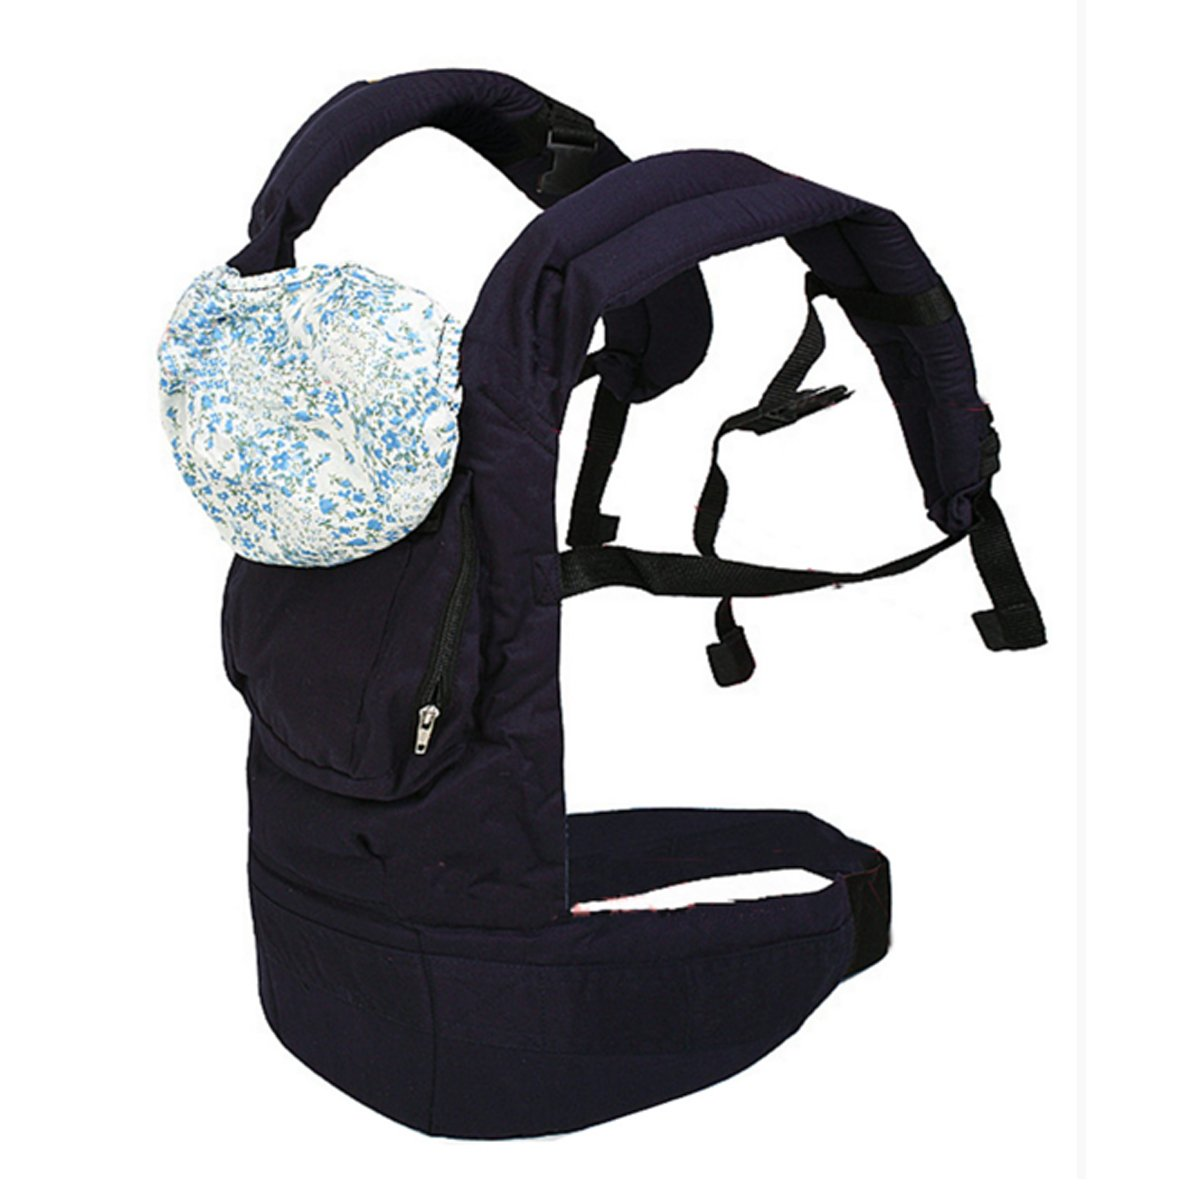 BBCL295 New Dark Blue Front Back Baby Safety Carrier Infant Comfort Backpack Sling Wrap Harness BabyCentre